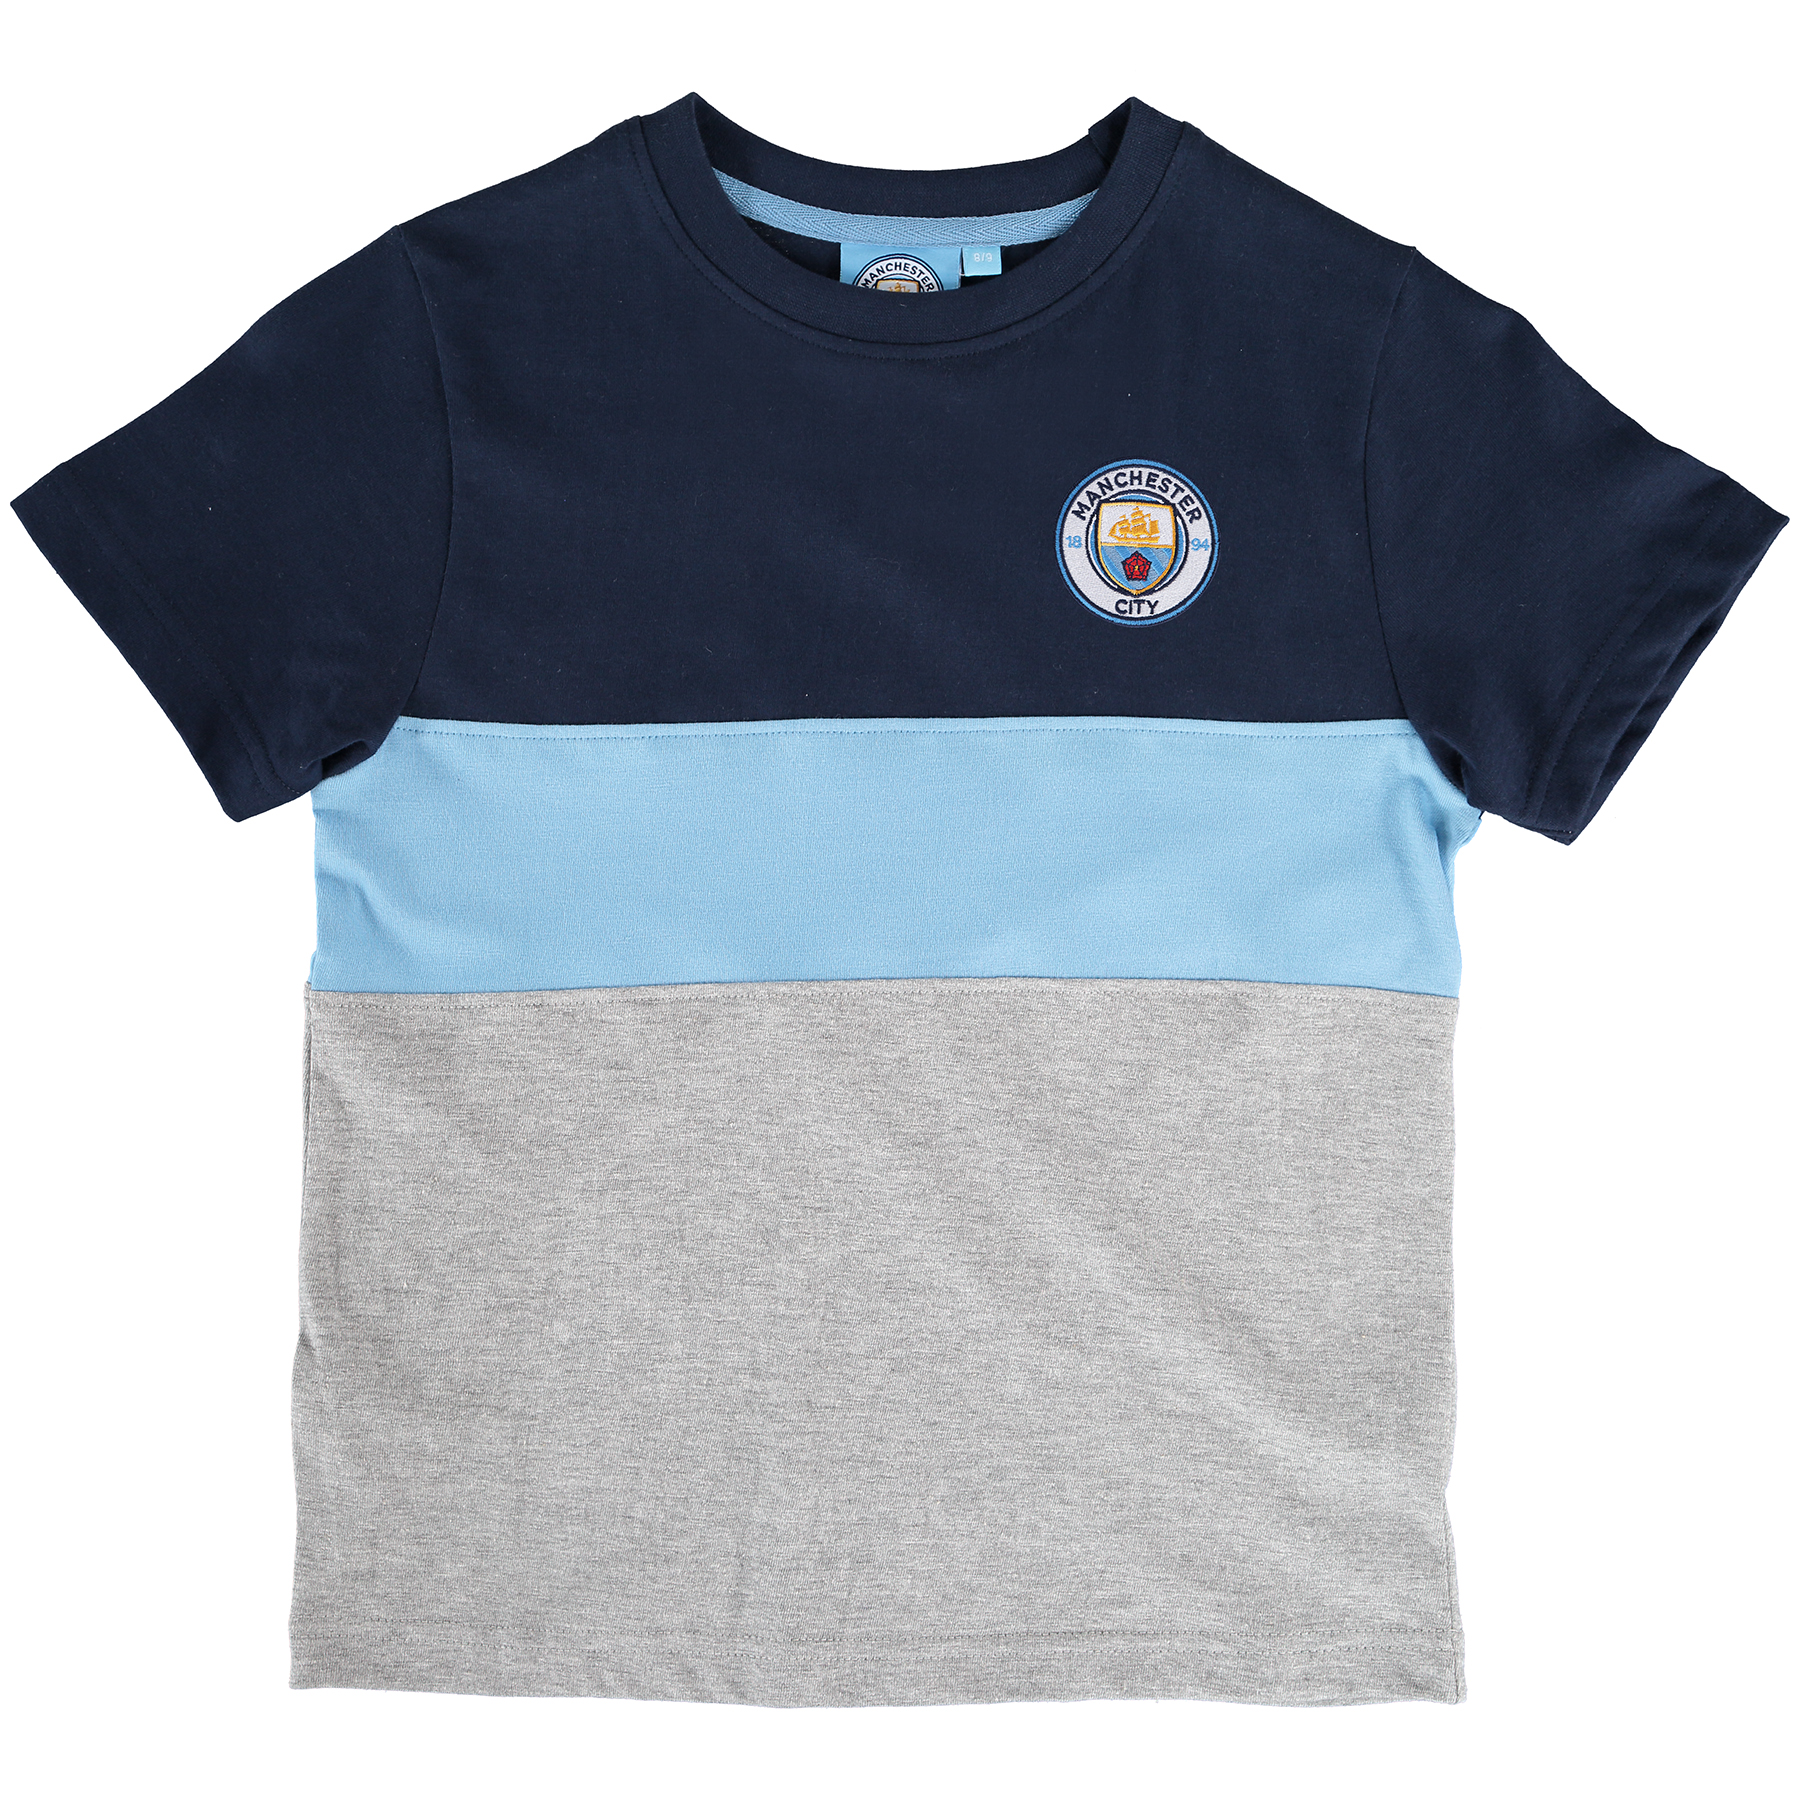 Manchester City Classic Block T-Shirt - Grey/Navy/Sky - Junior